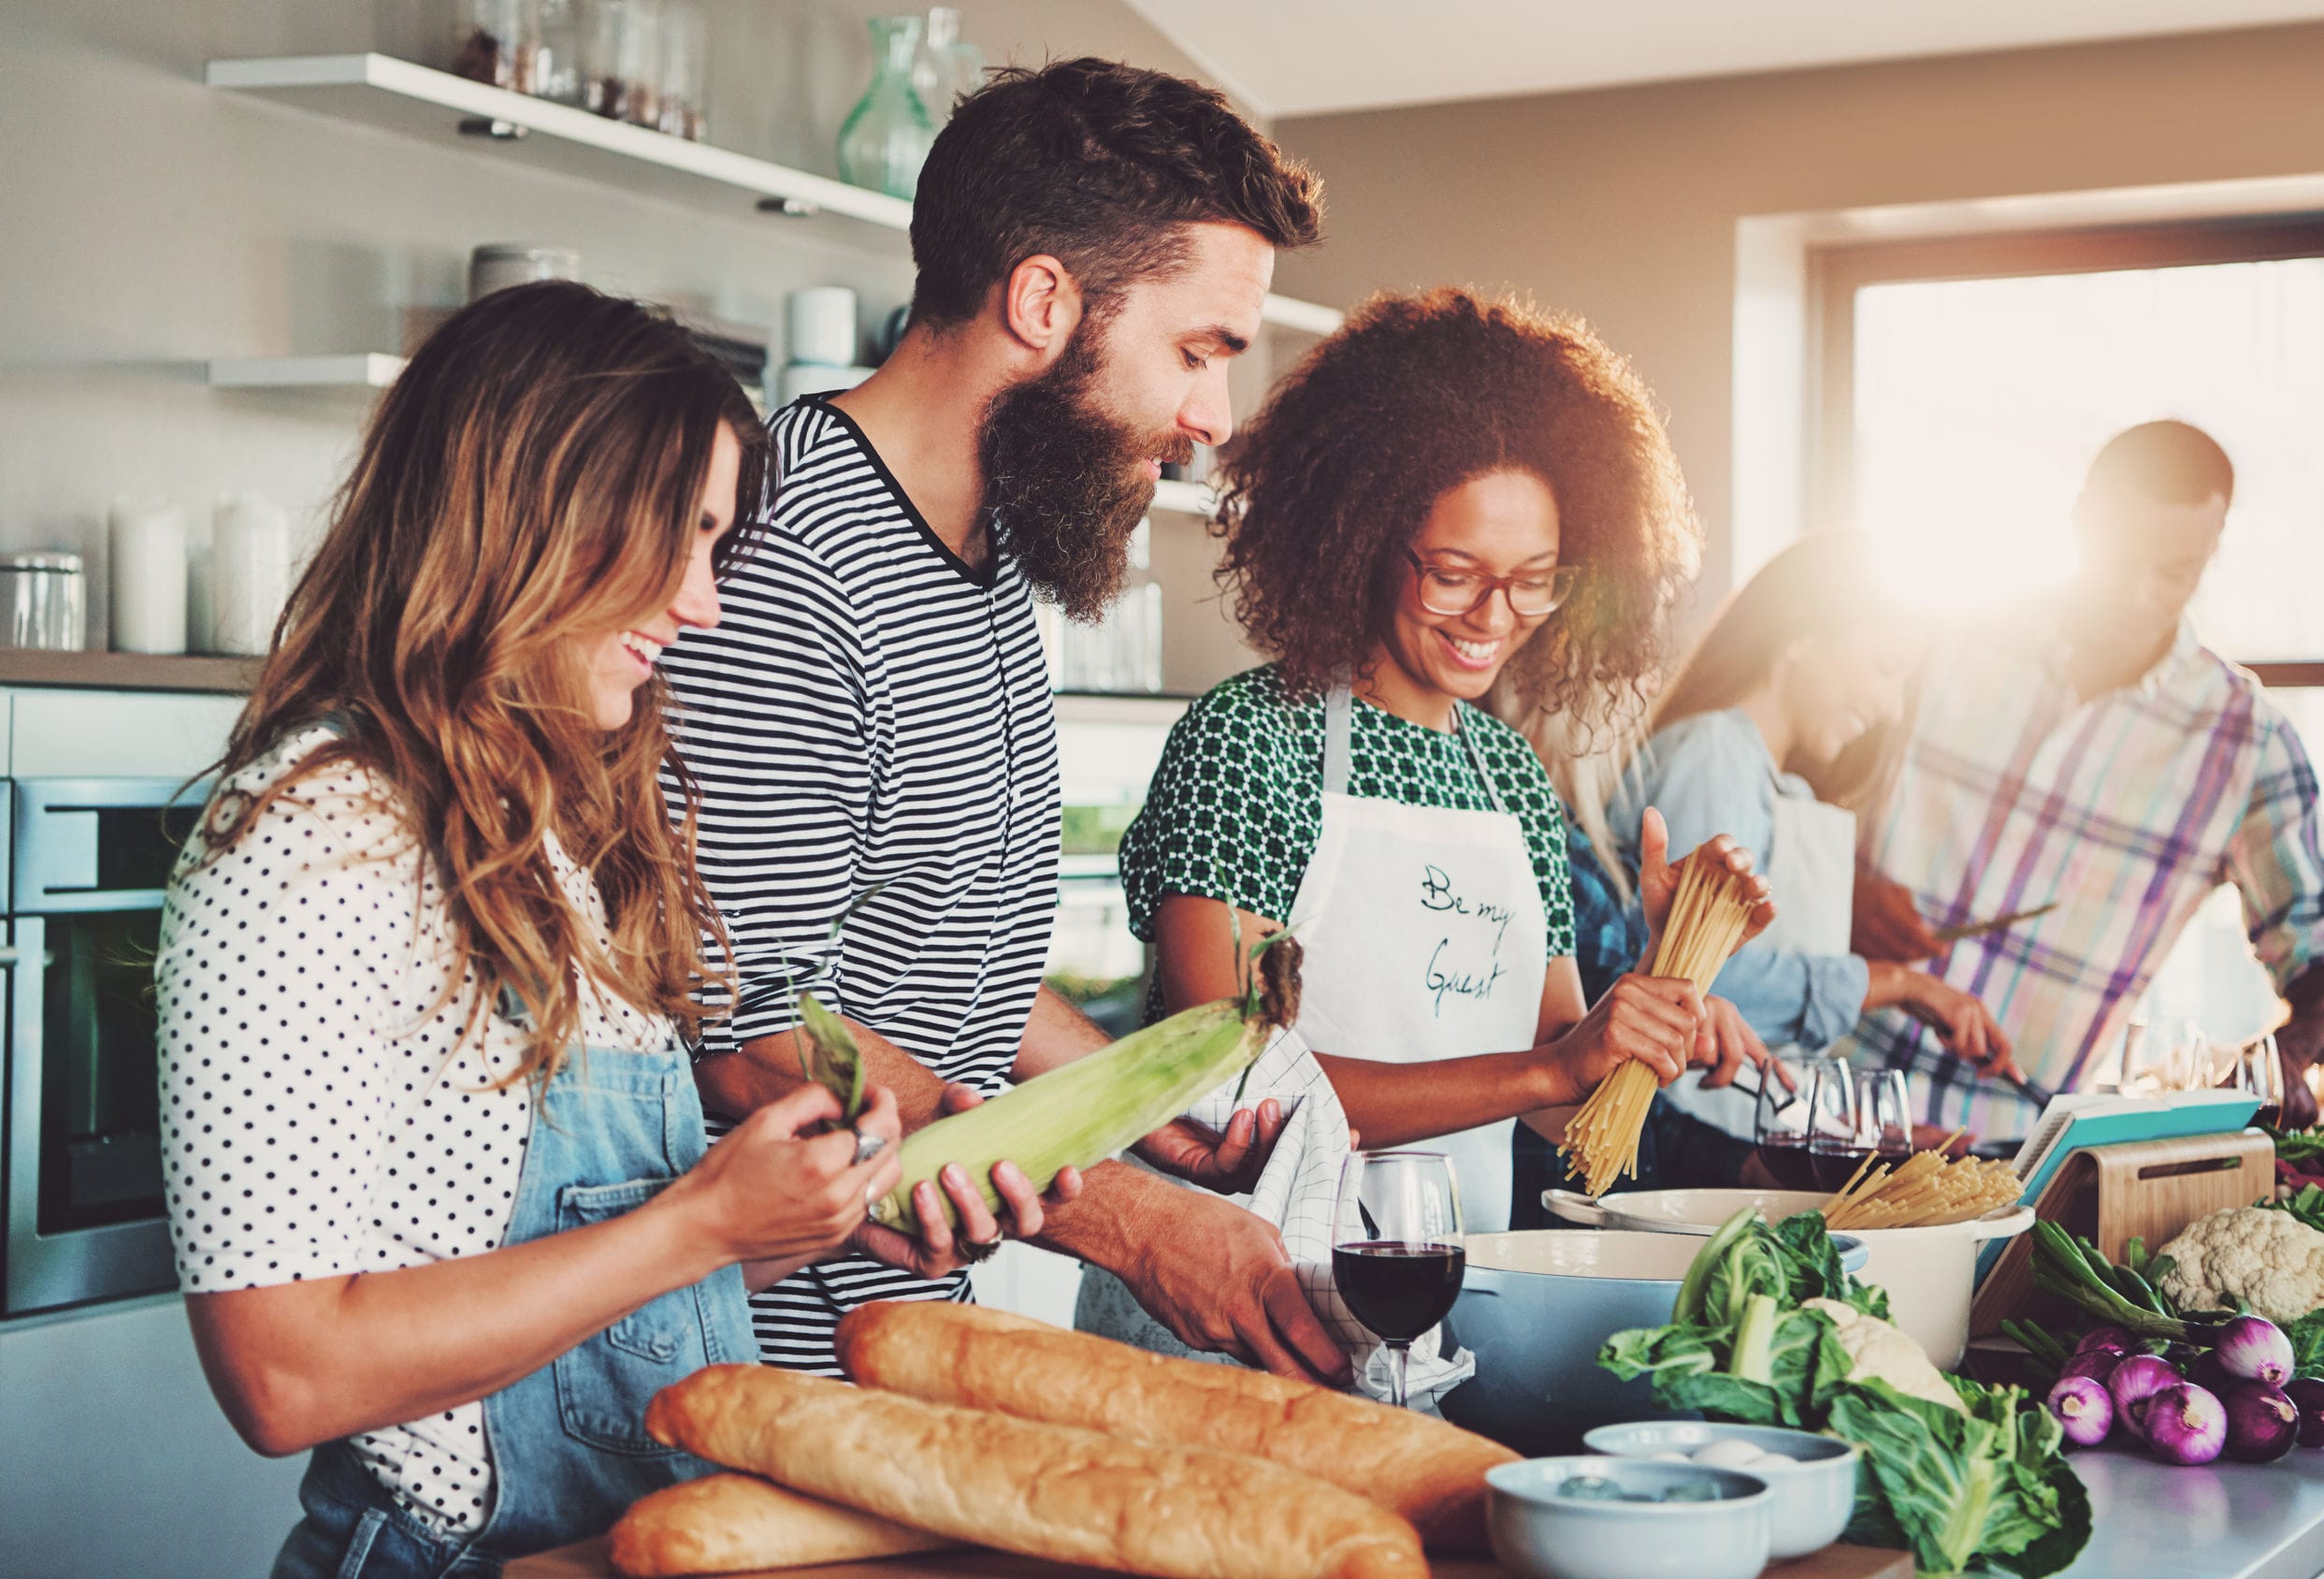 11 Tips for Throwing a Cooking Party In 2021